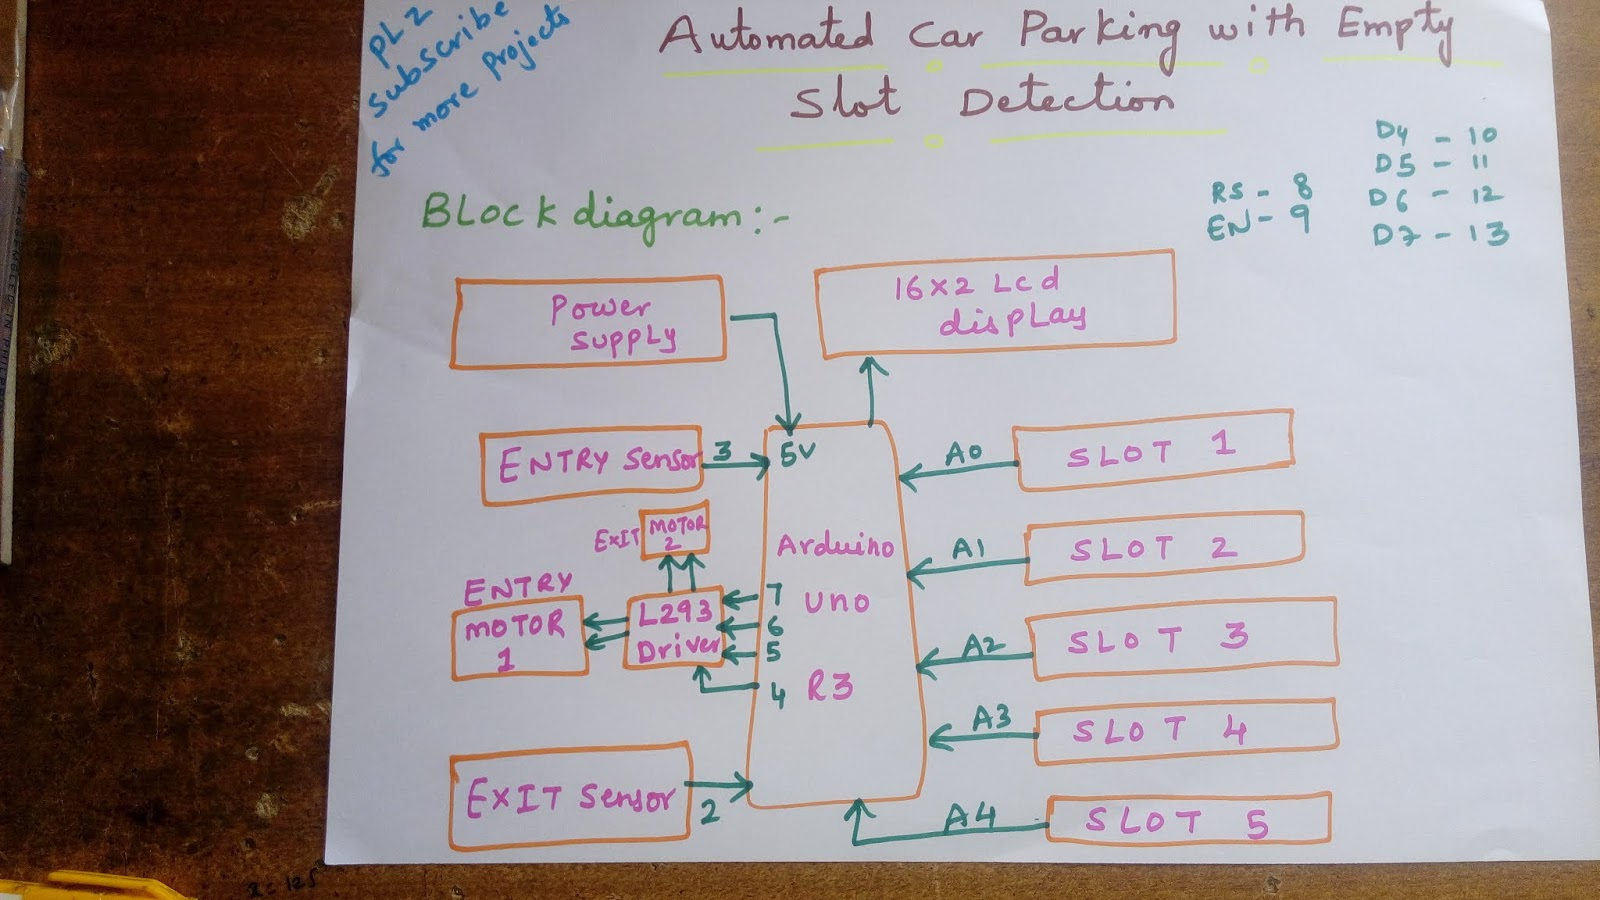 Svsembedded Projects 91 9491535690 7842358459 Automatic Car Pulse Counter Circuit Embedded Systems Ideas Edgefx Launching Automated Rotary Parking System Aip Publishing 69 Implementation Paper On Smart Ijircce 70 Cloud Based Vehicle